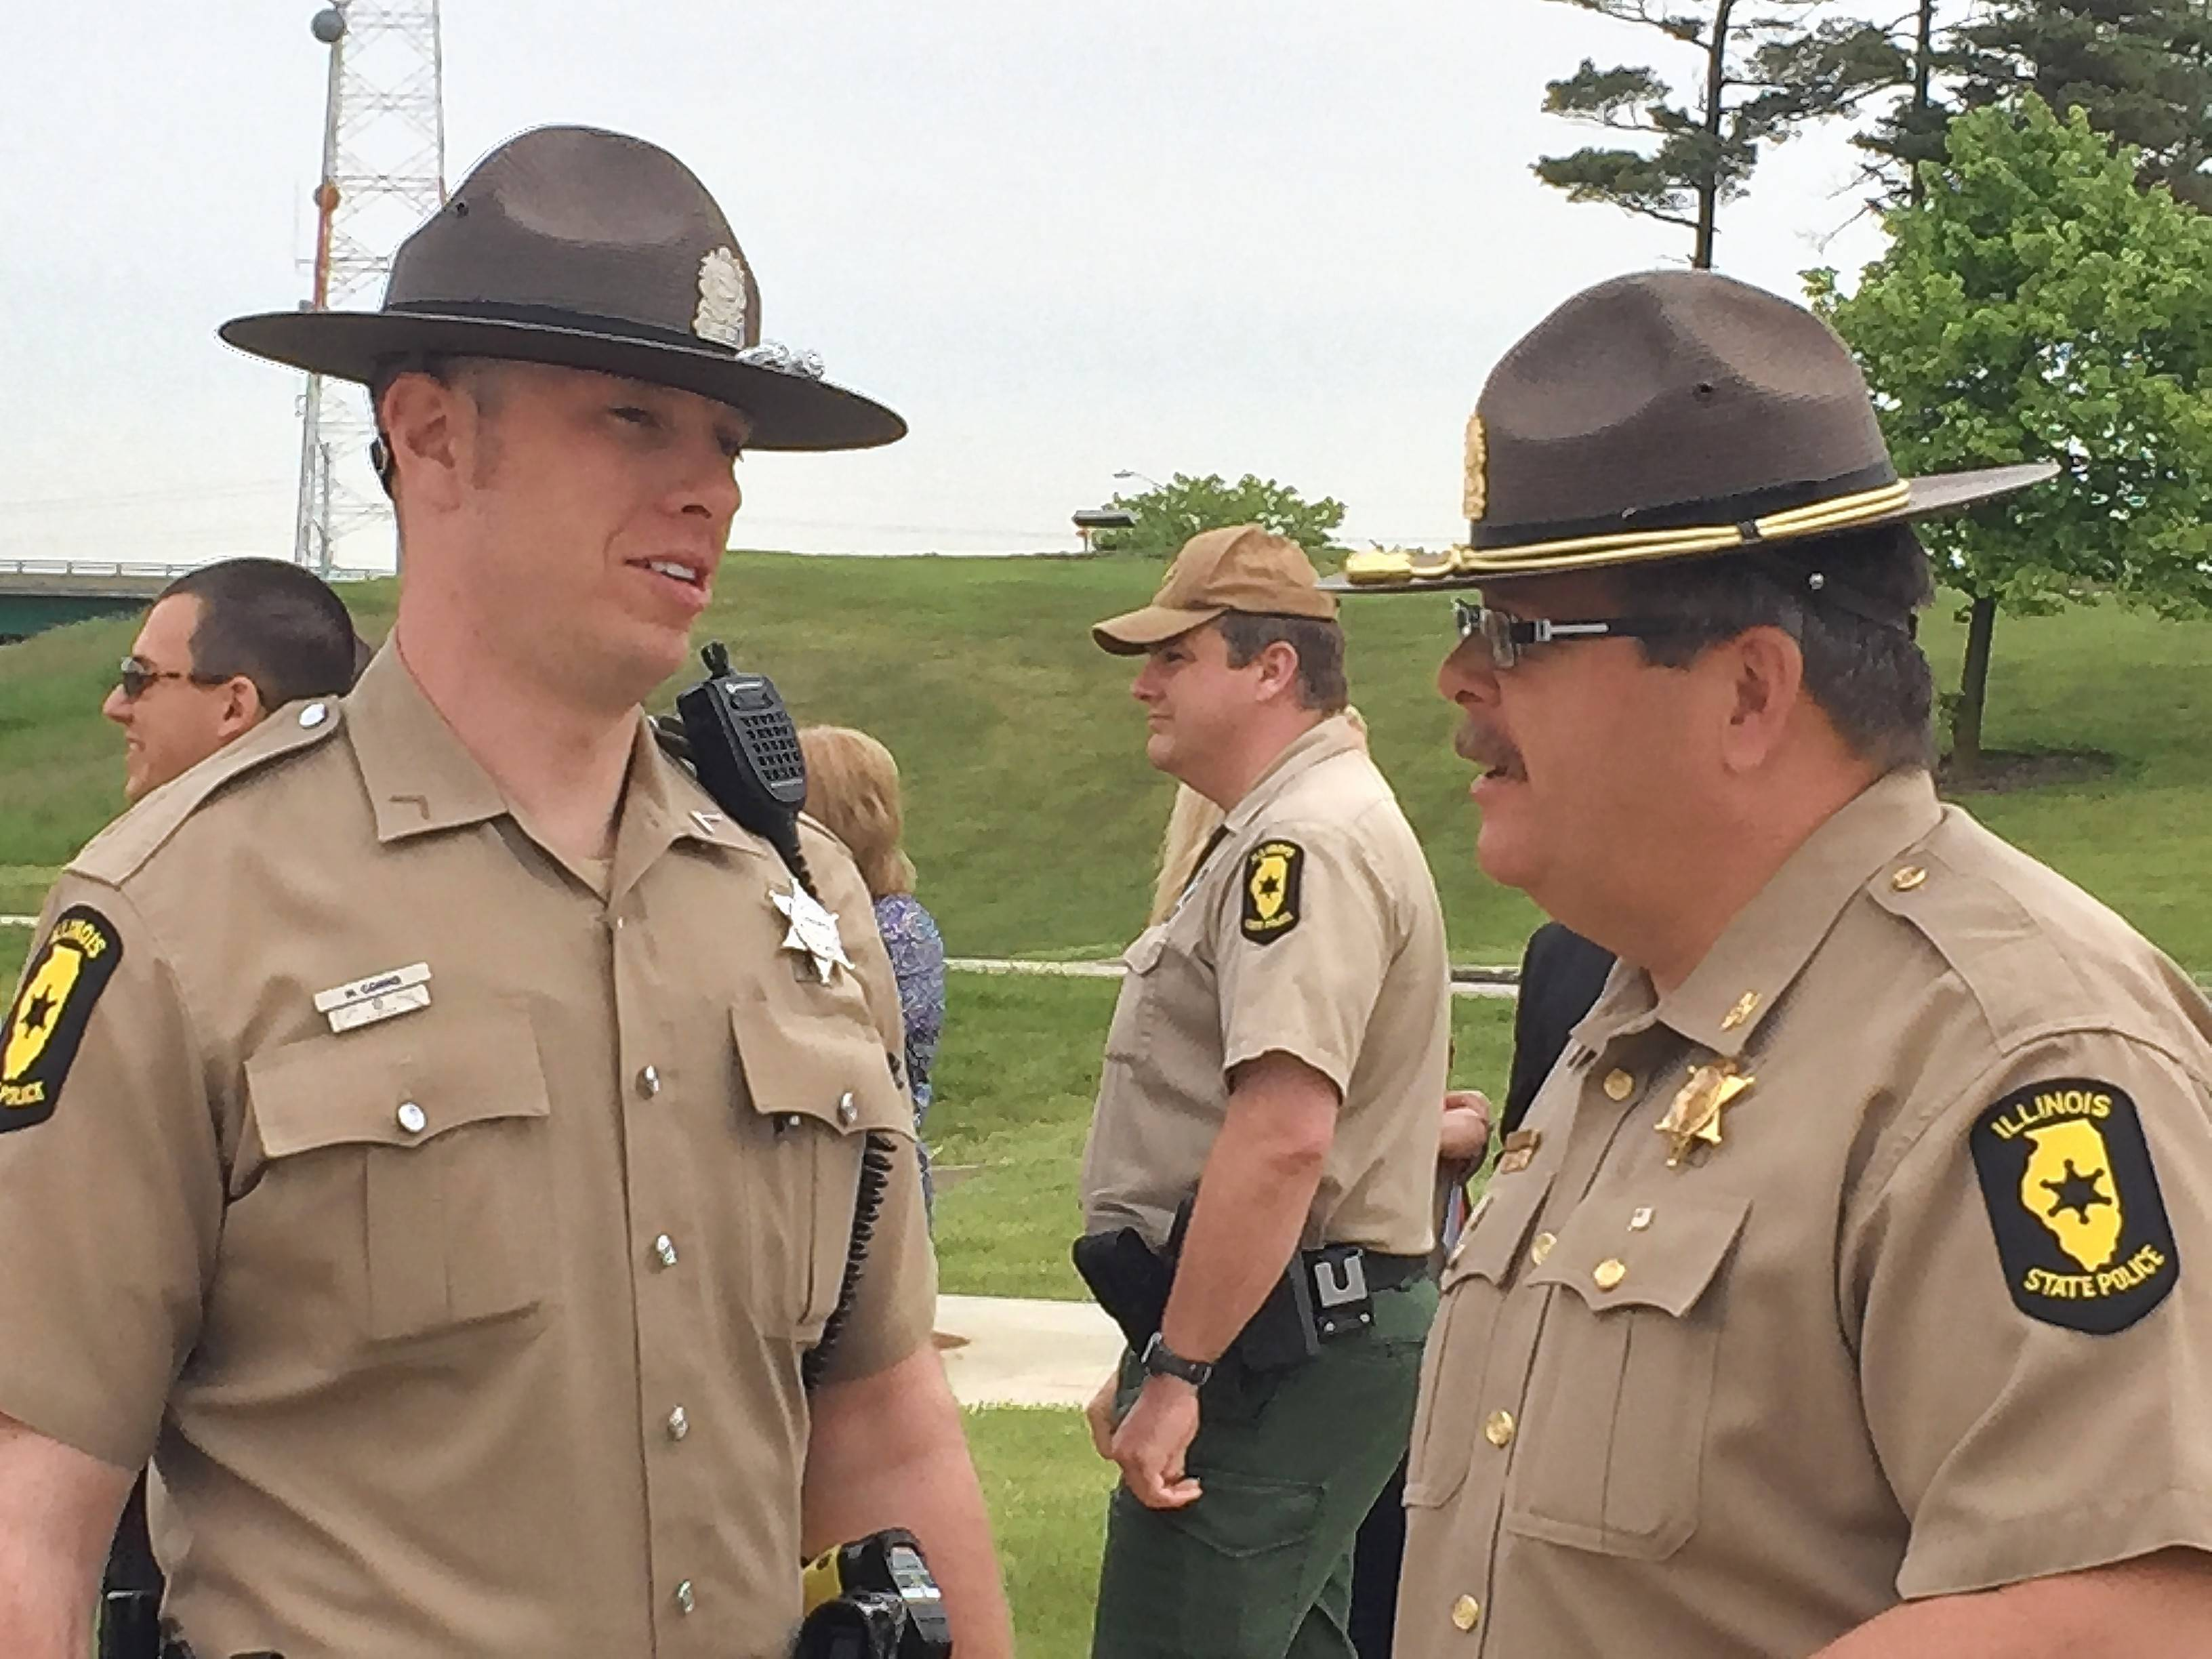 Illinois State Police Col. Tad Williams, right, welcomed Trooper Michael Cokins back to duty prior to a Friday ceremony in Downers Grove. Cokins was seriously injured 20 months ago when he was struck by a drunken driving suspect during a traffic stop.